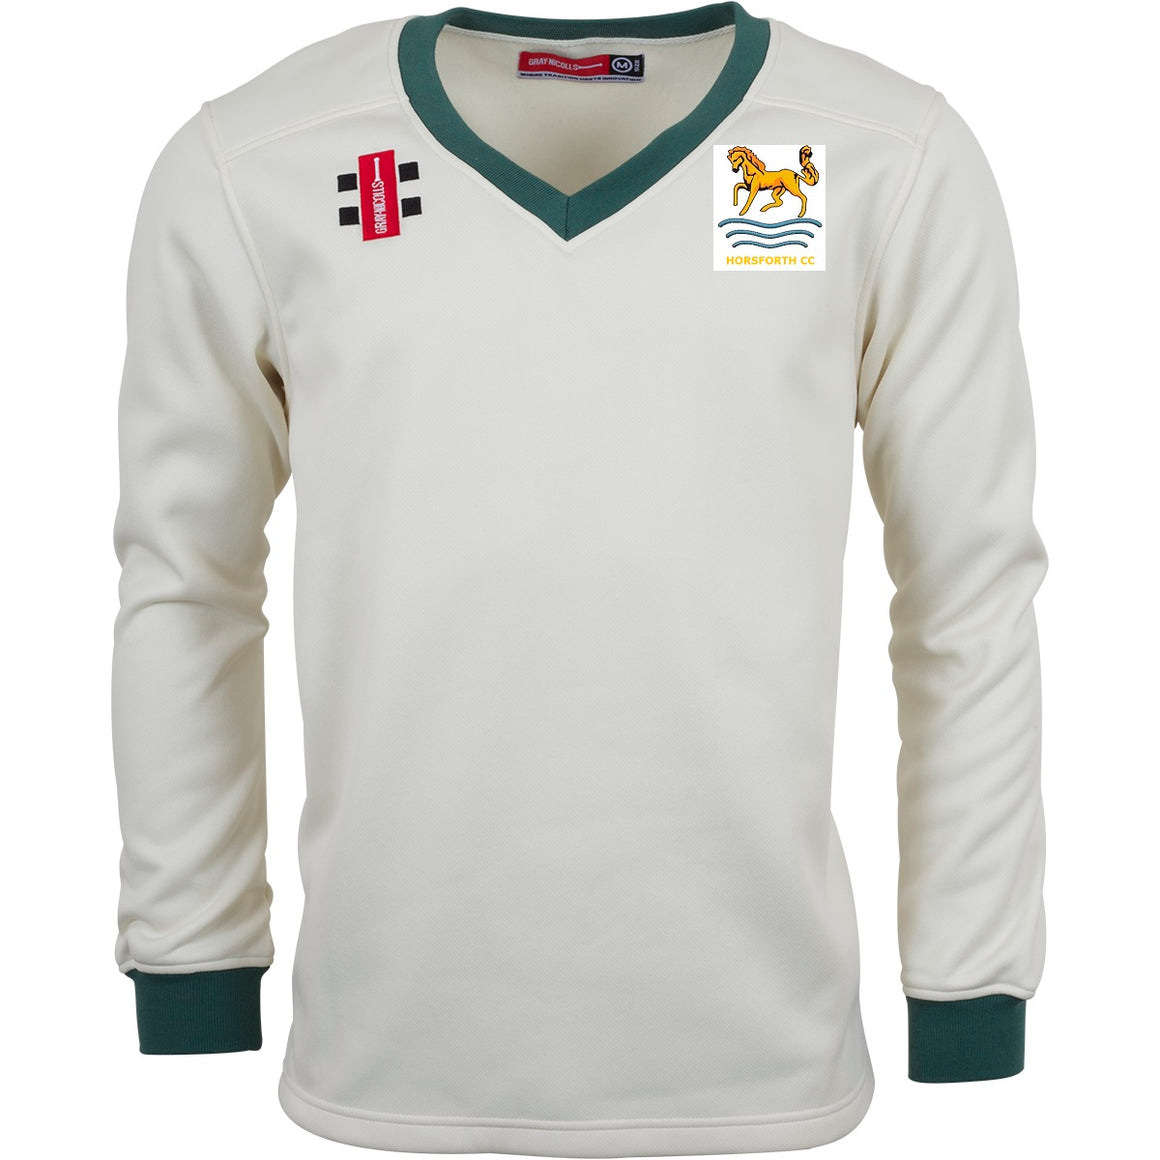 Horsforth CC Juniors Sweater